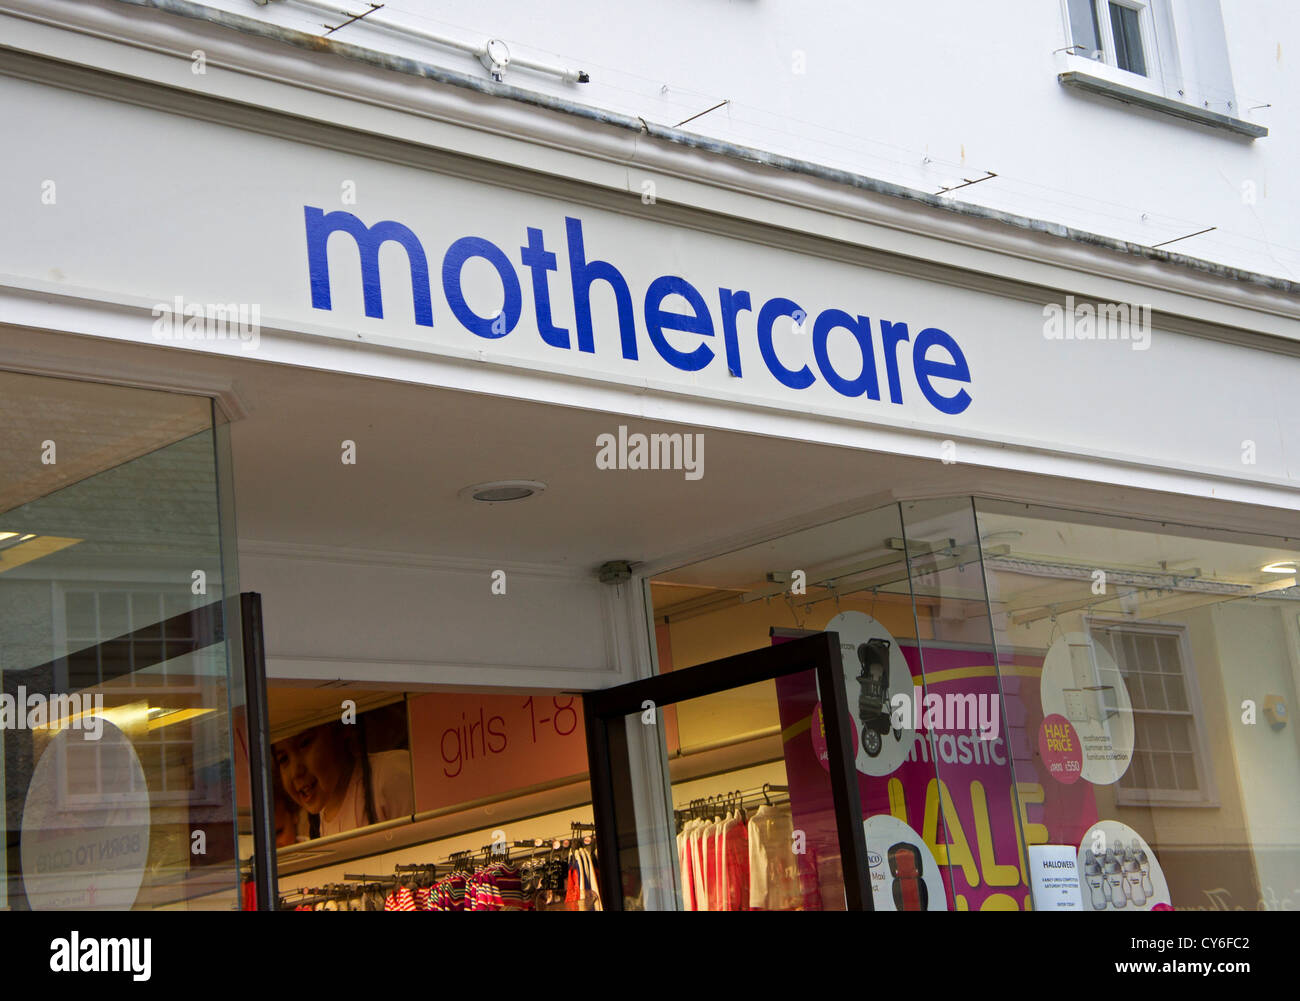 A Mothercare stroe in the UK - Stock Image